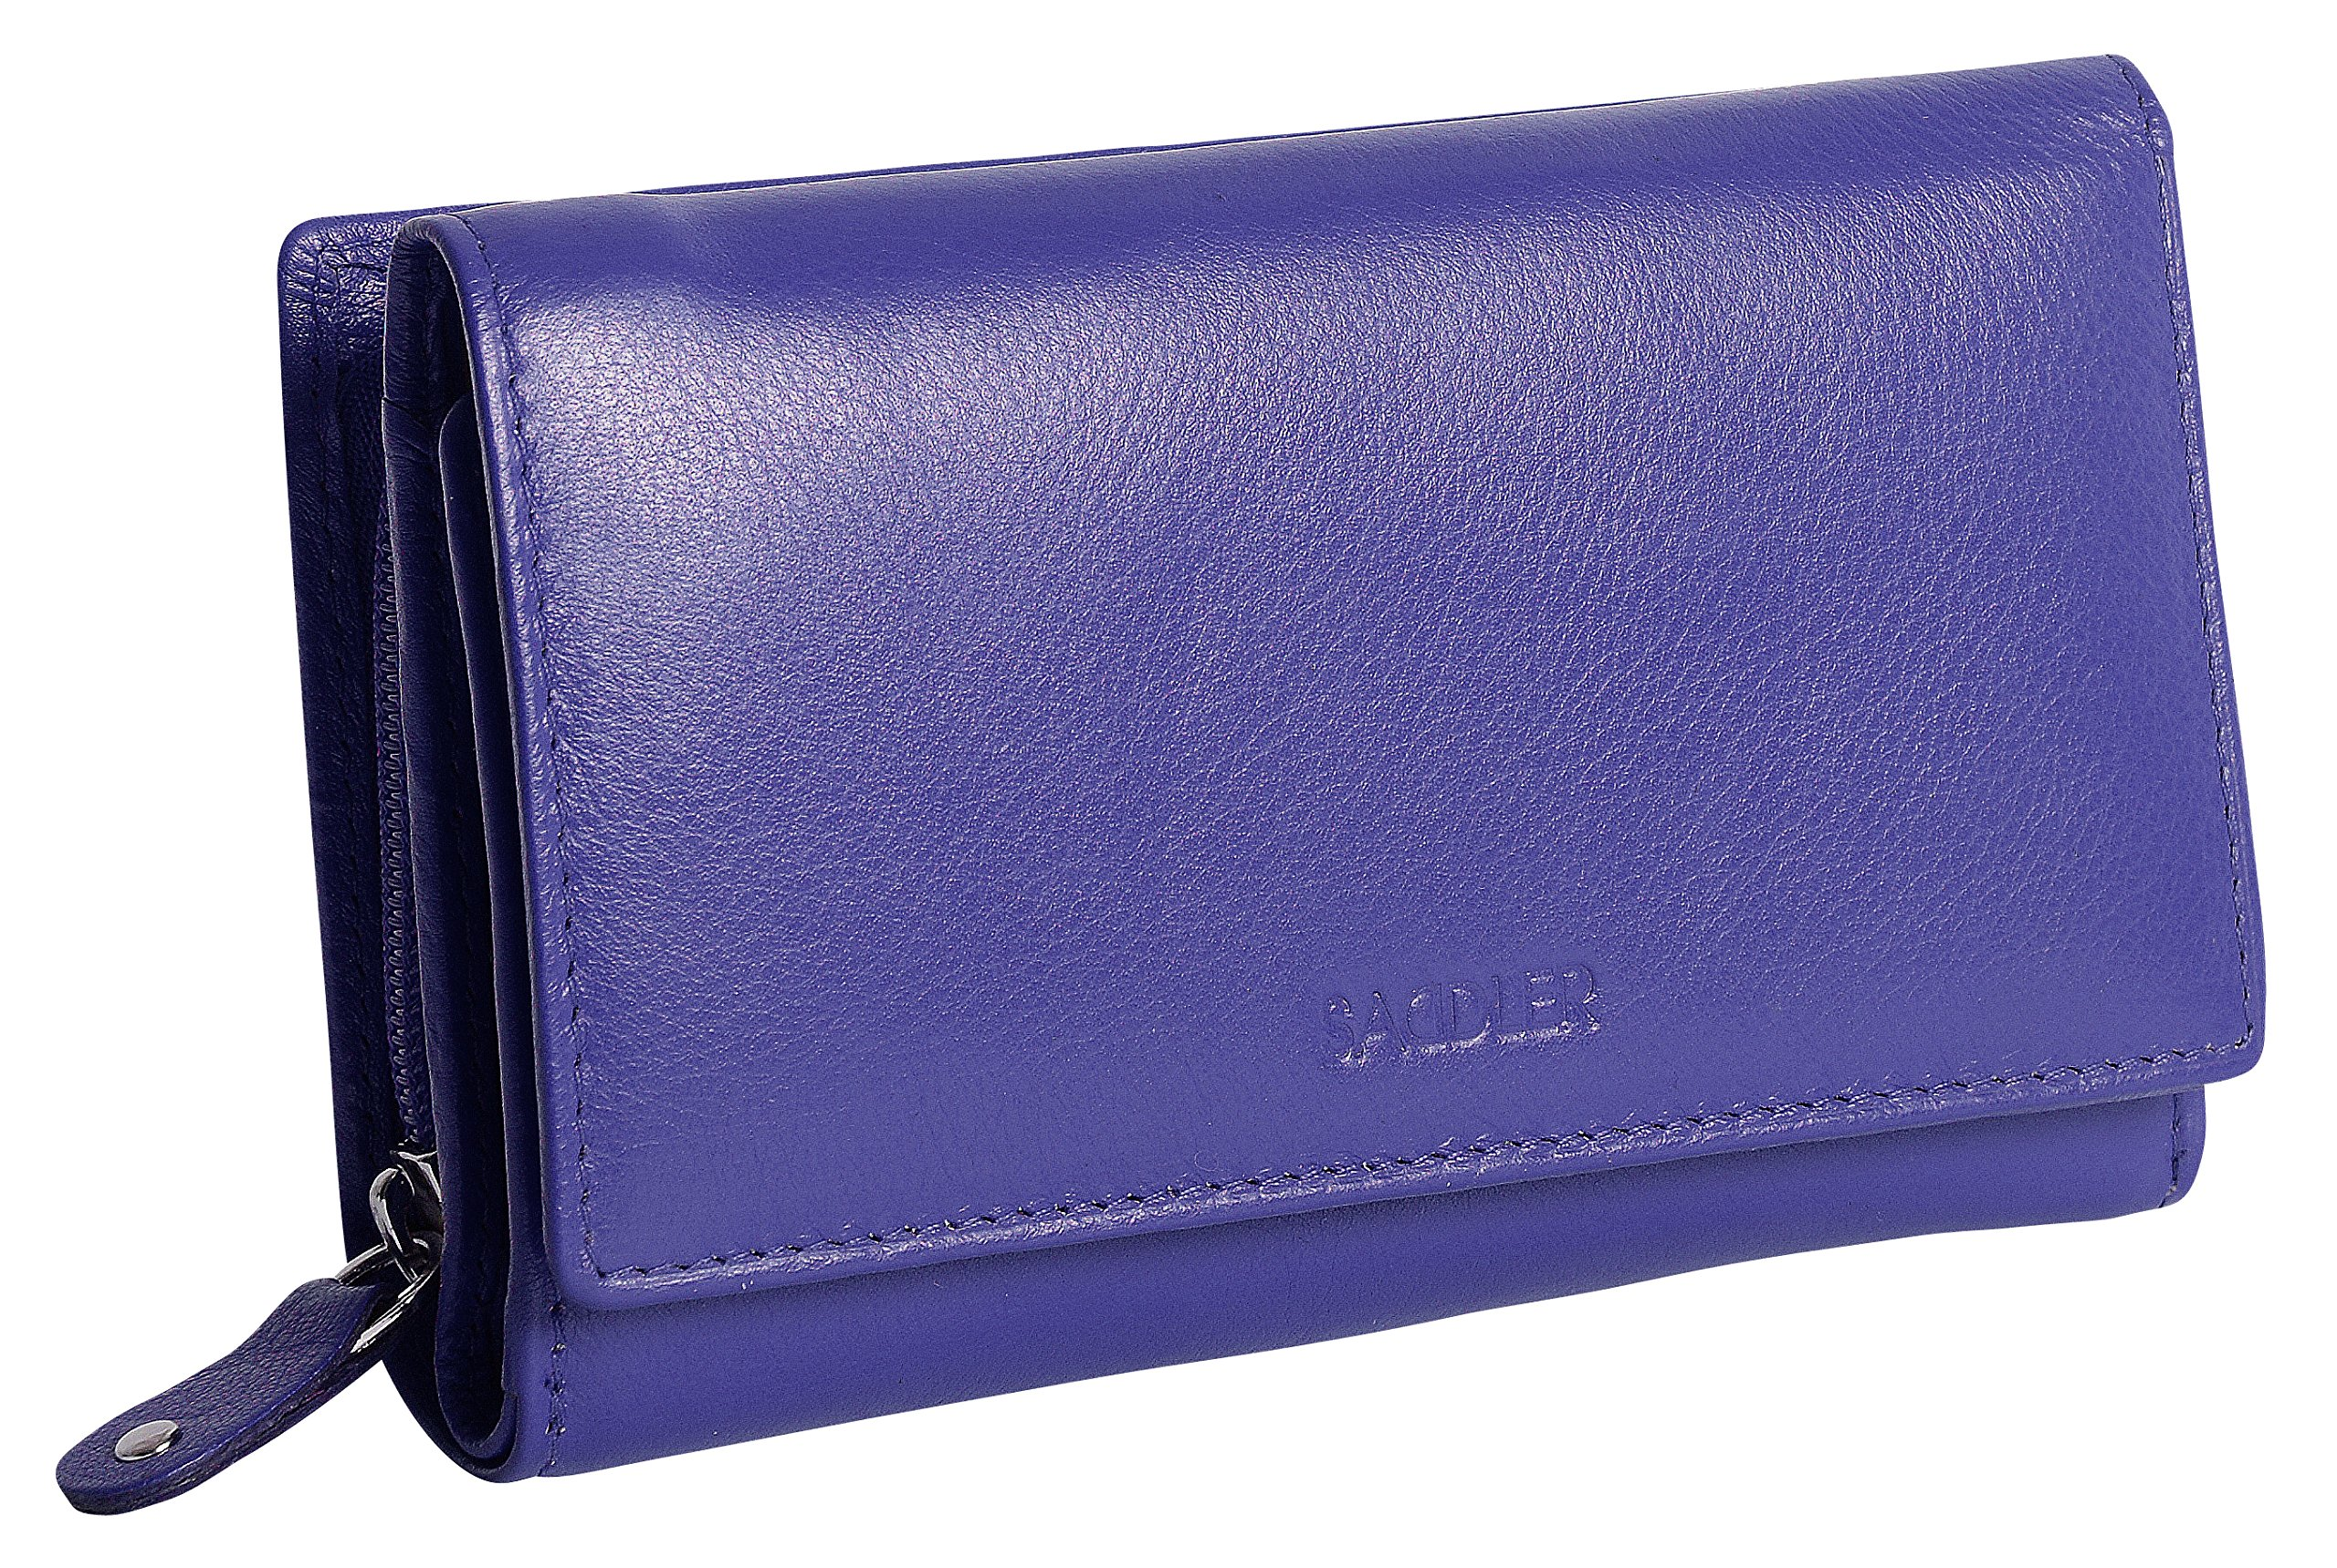 SADDLER Womens Real Leather Medium Trifold Wallet With Zipper Coin Purse - Ultraviolet